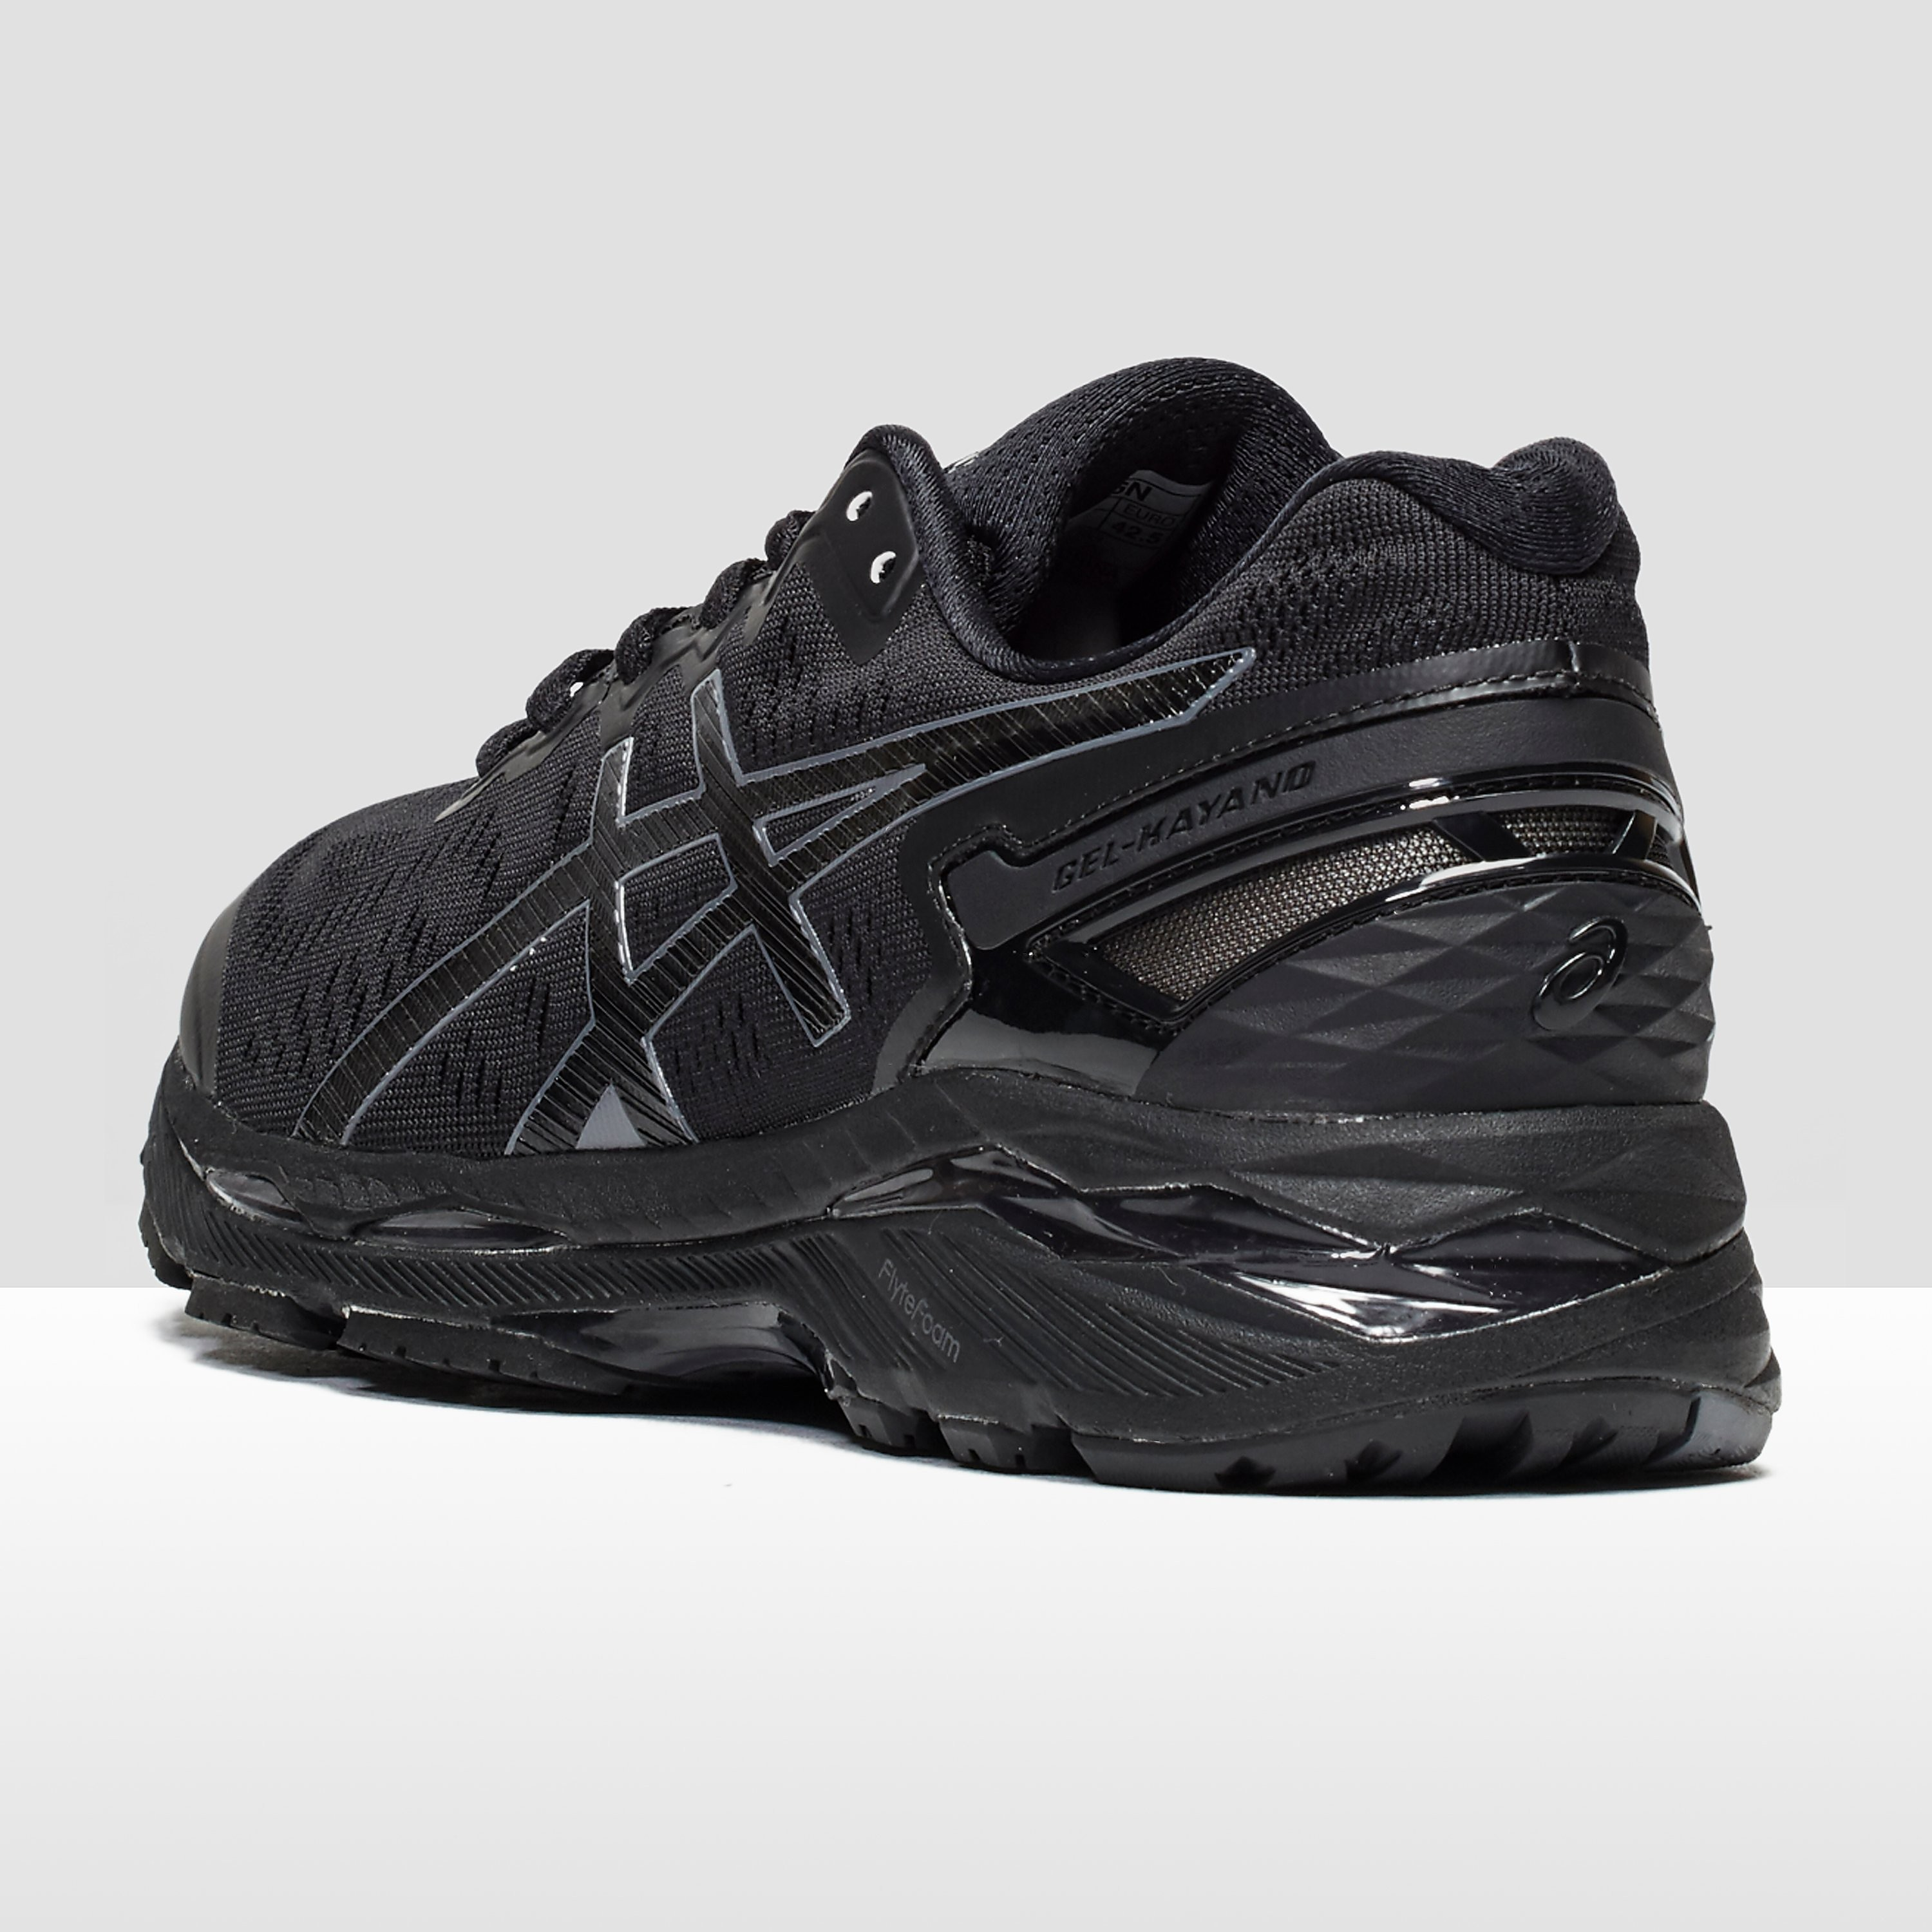 Asics Gel Kayano 23 Men's Running Shoe